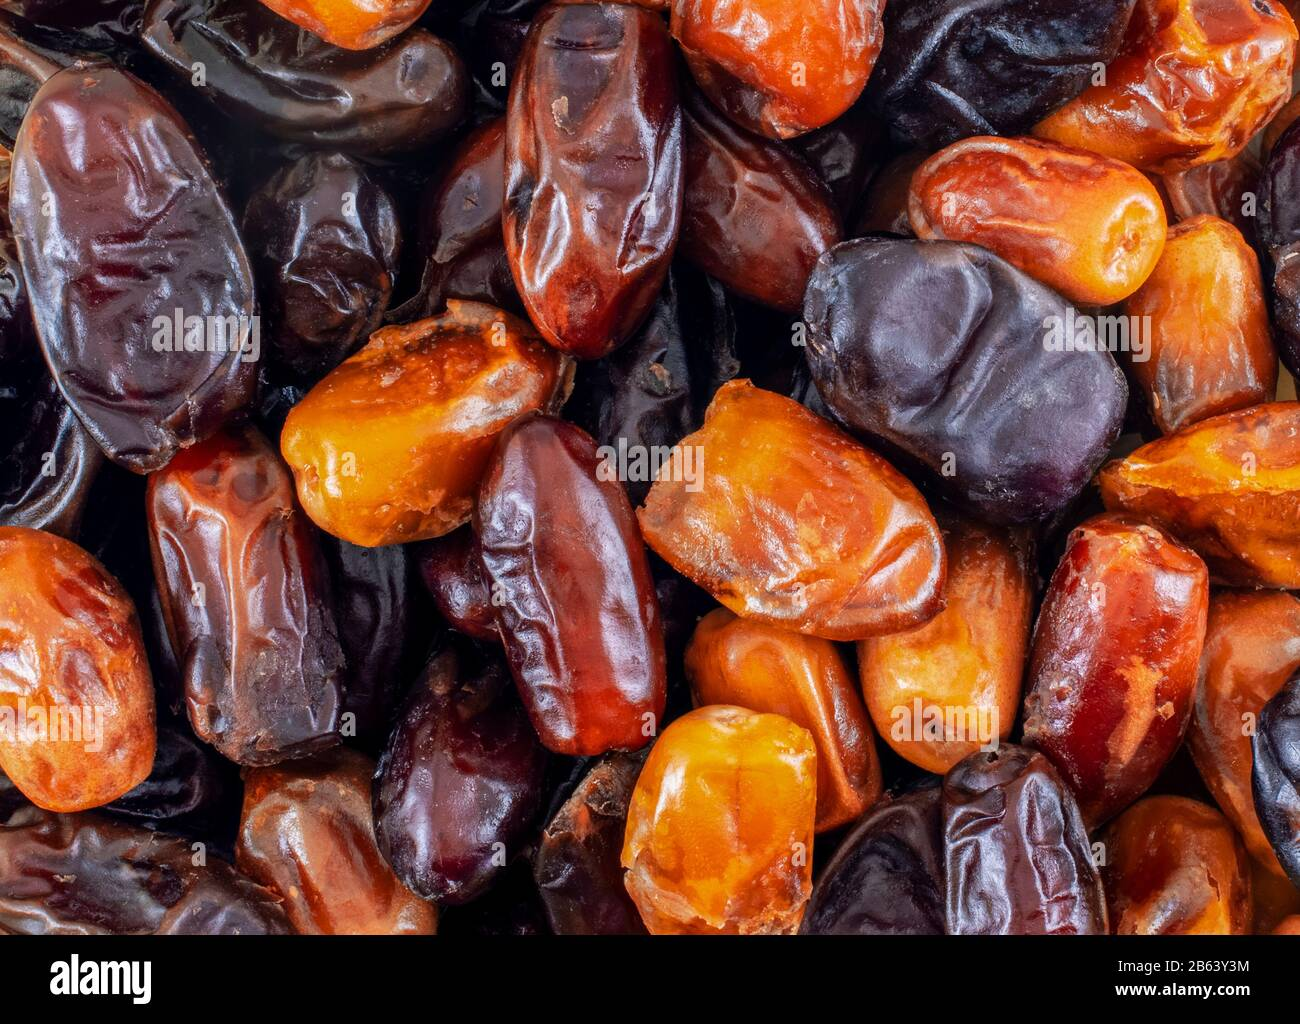 Date fruits close-up. Dried dates with different varieties. Stock Photo